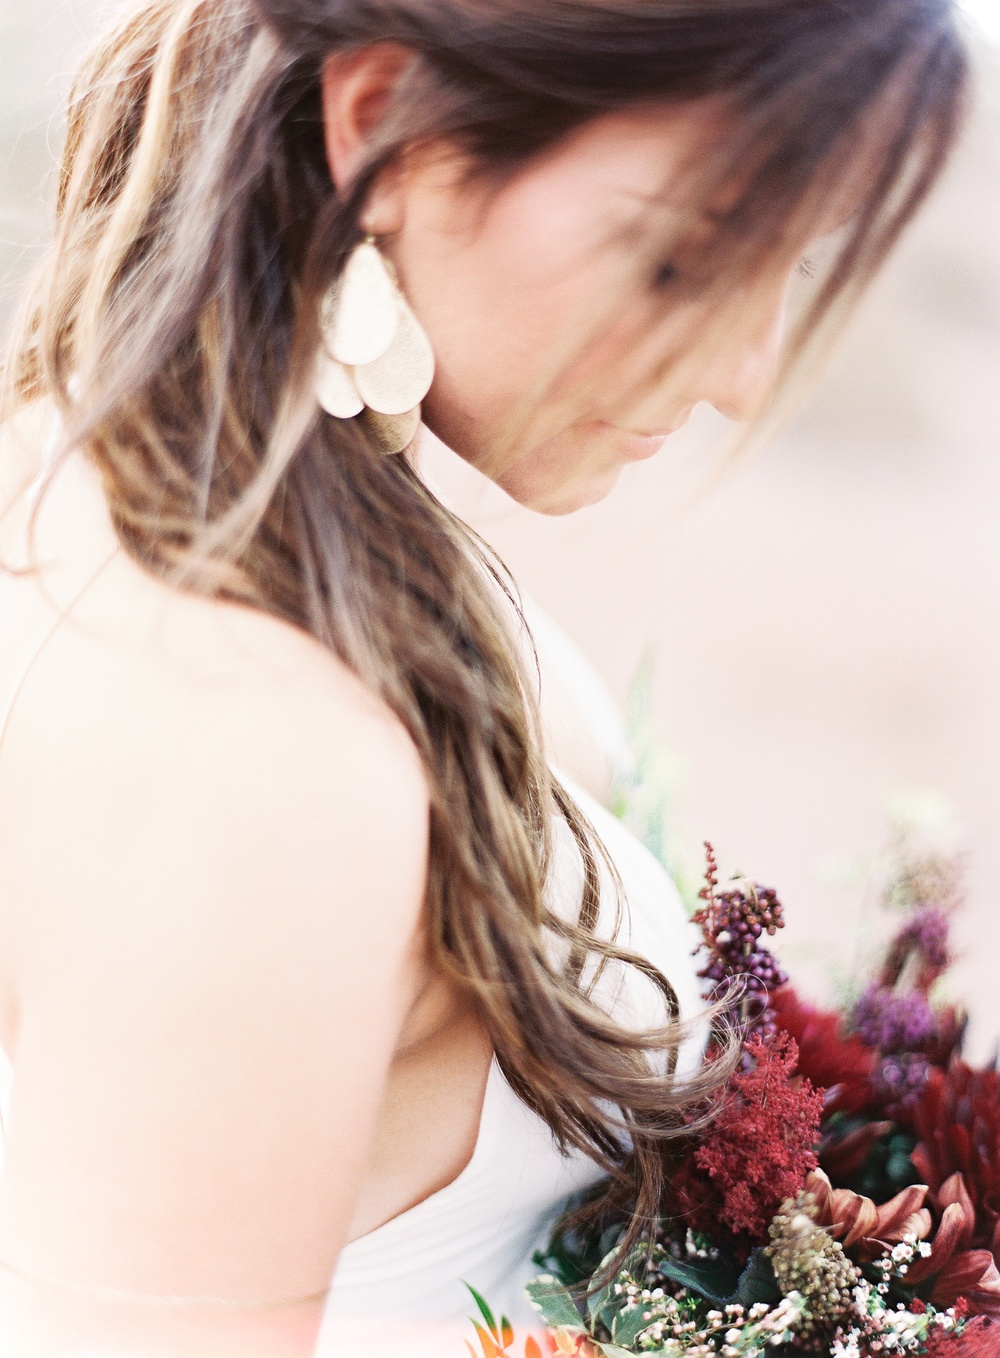 Scottsdale-Arizona-boho-bridal-desert-session-film-contax-645-by-Natalie-Jayne-Photography-image